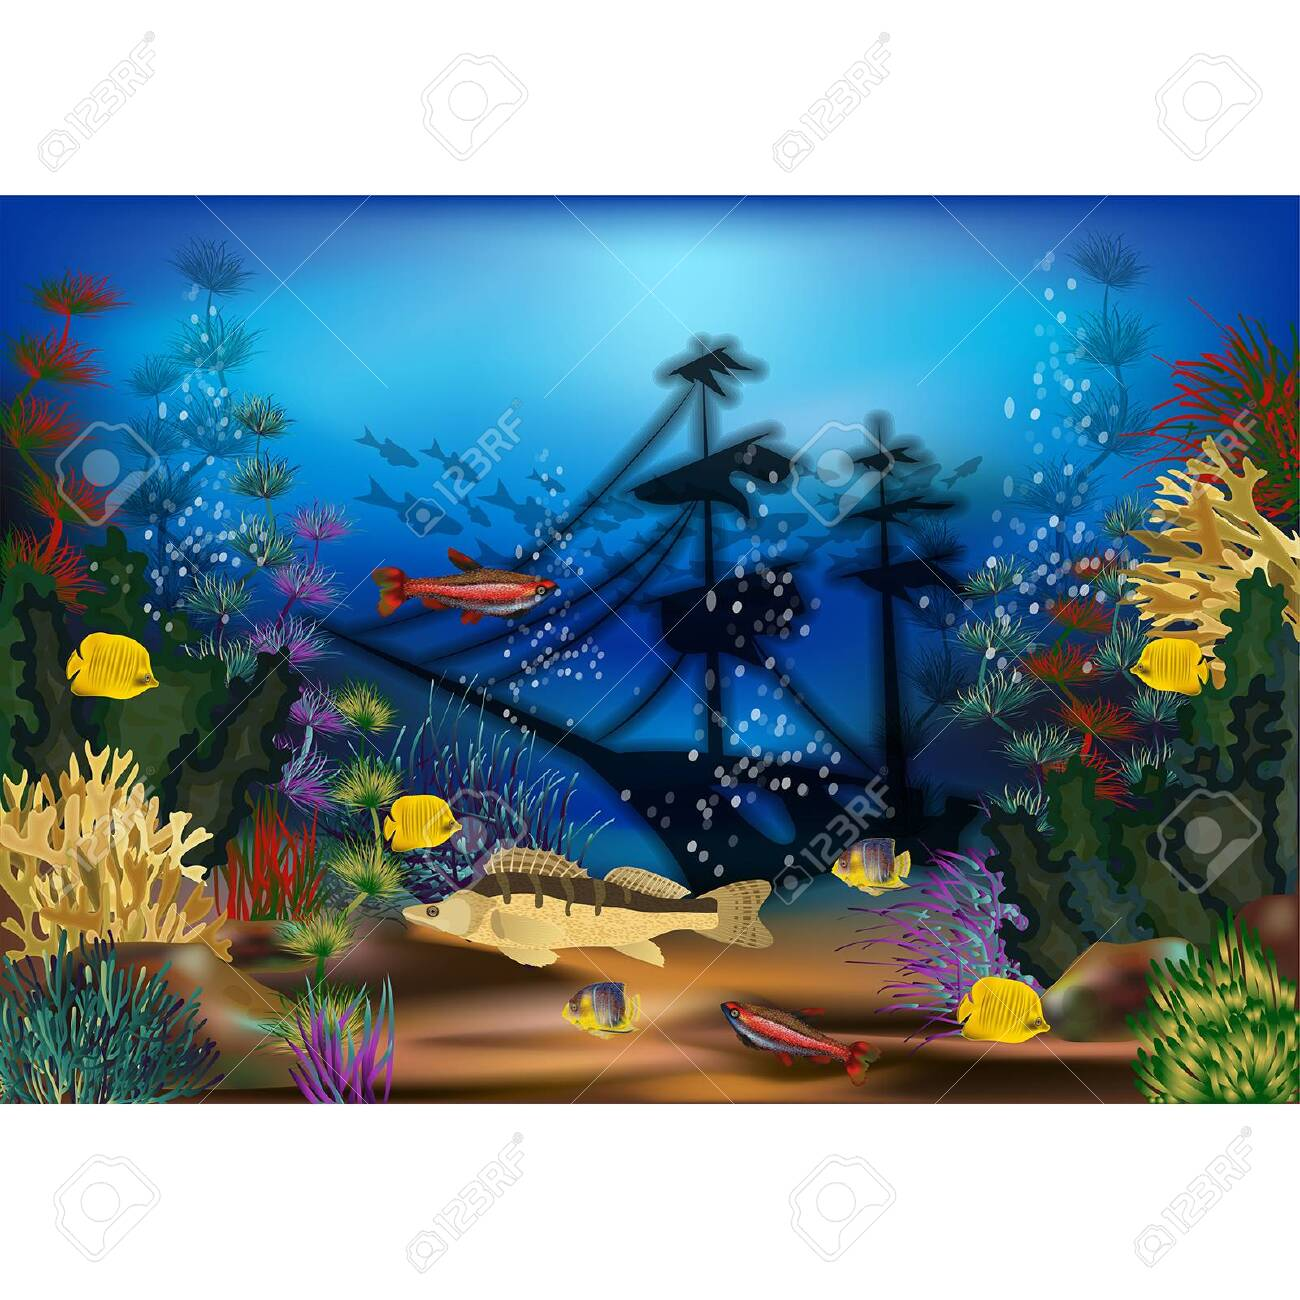 Free Shipwreck Cliparts, Download Free Clip Art, Free Clip Art on Clipart  Library